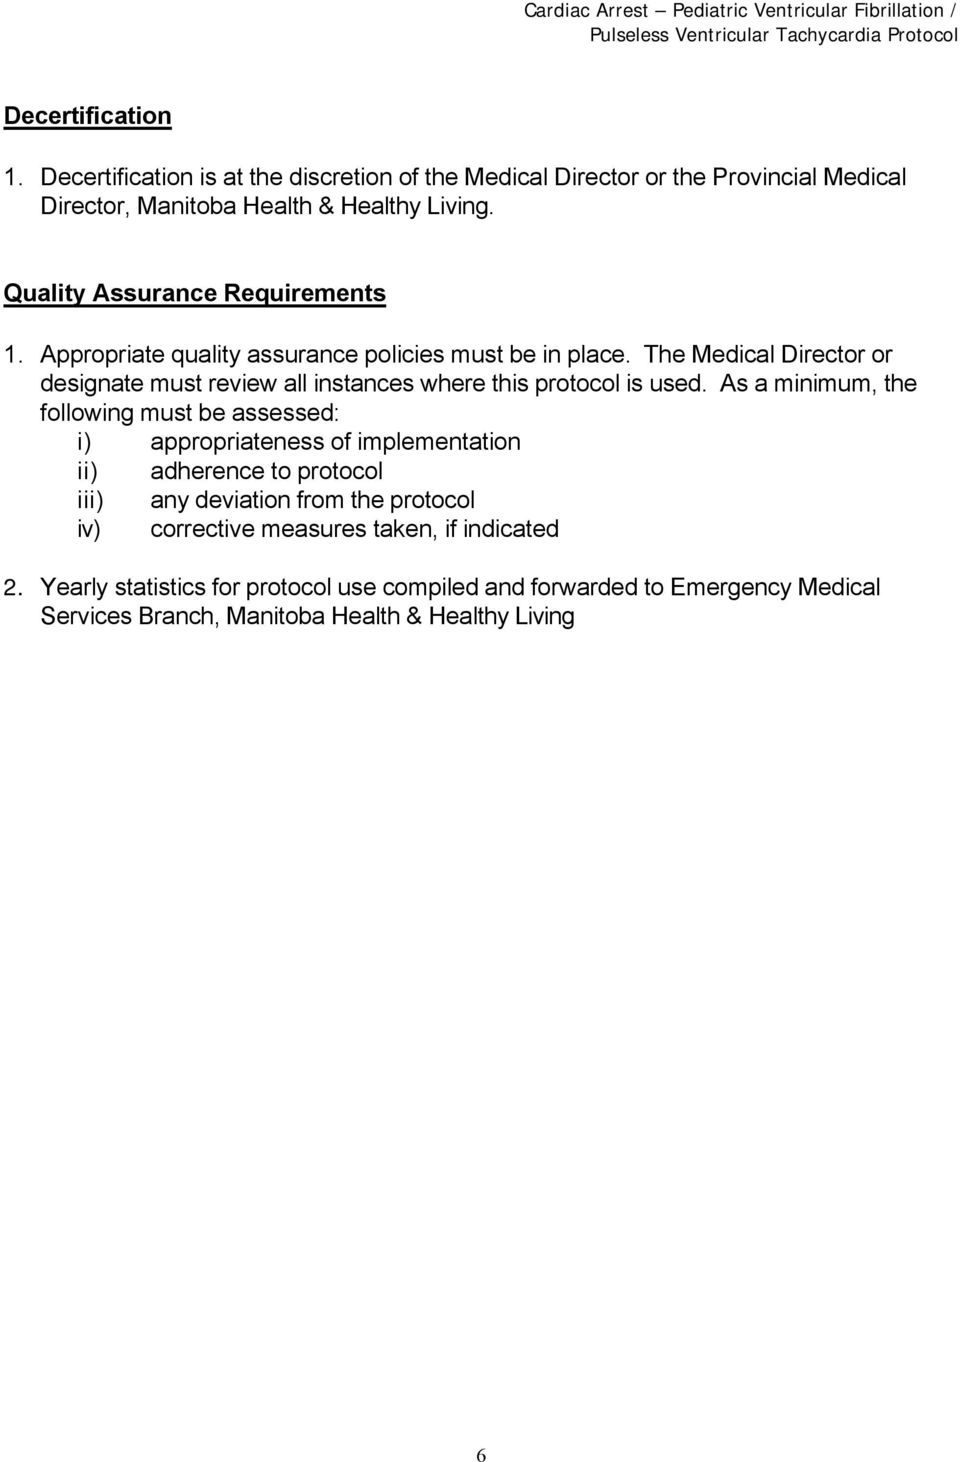 The Medical Director or designate must review all instances where this protocol is used.